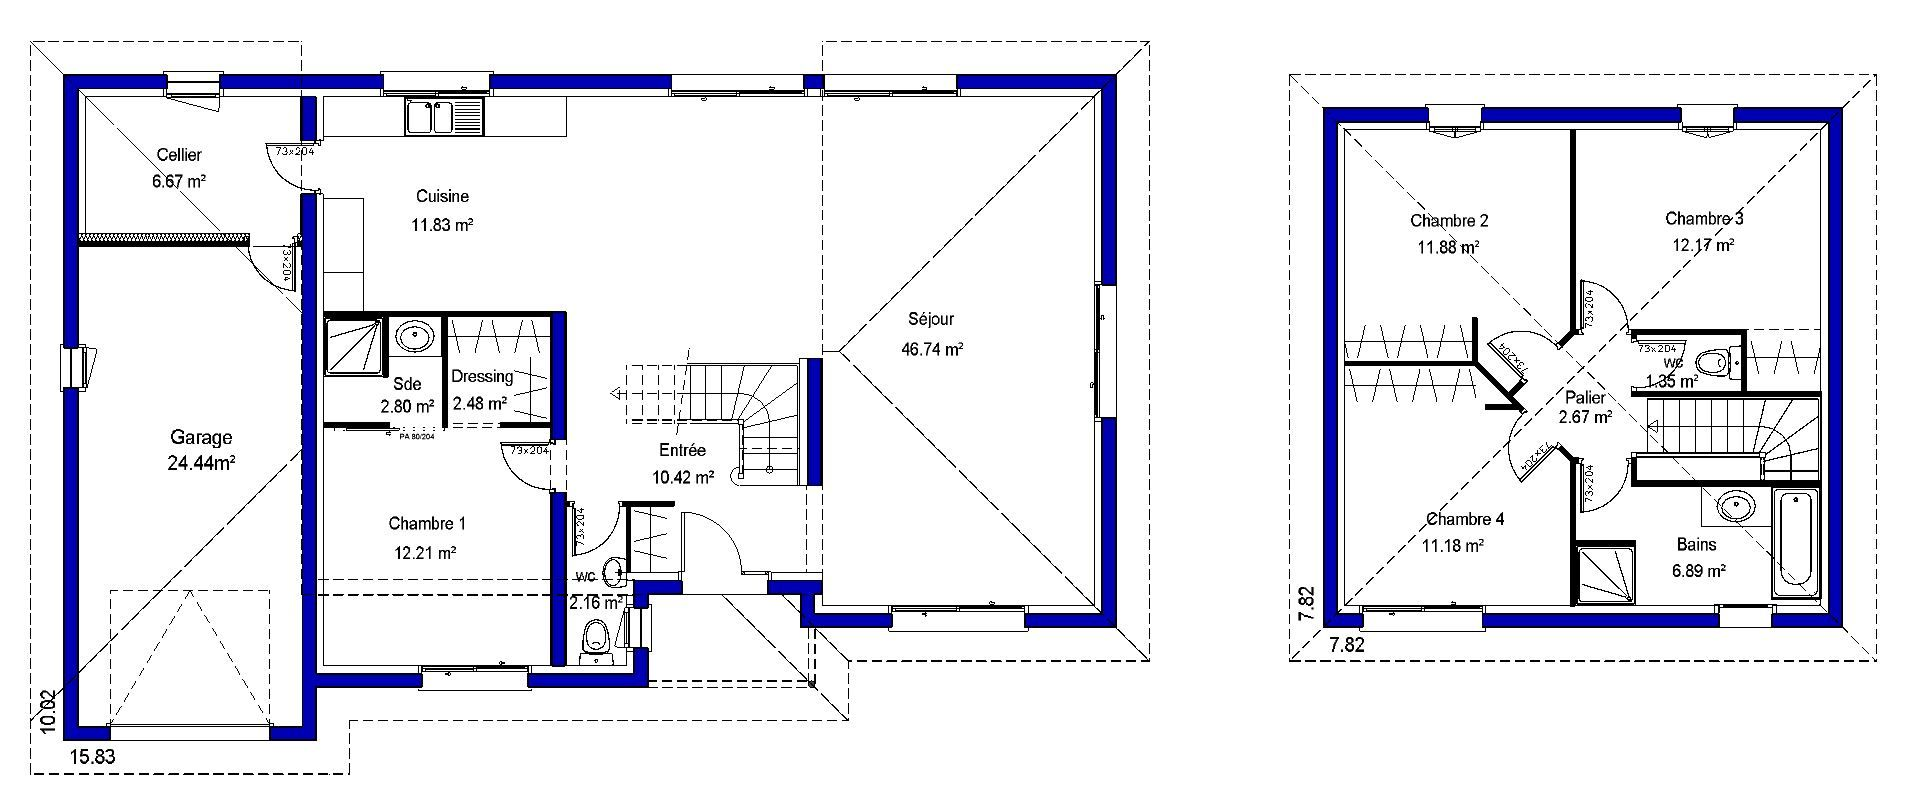 Free With Plan Maison 140 M2